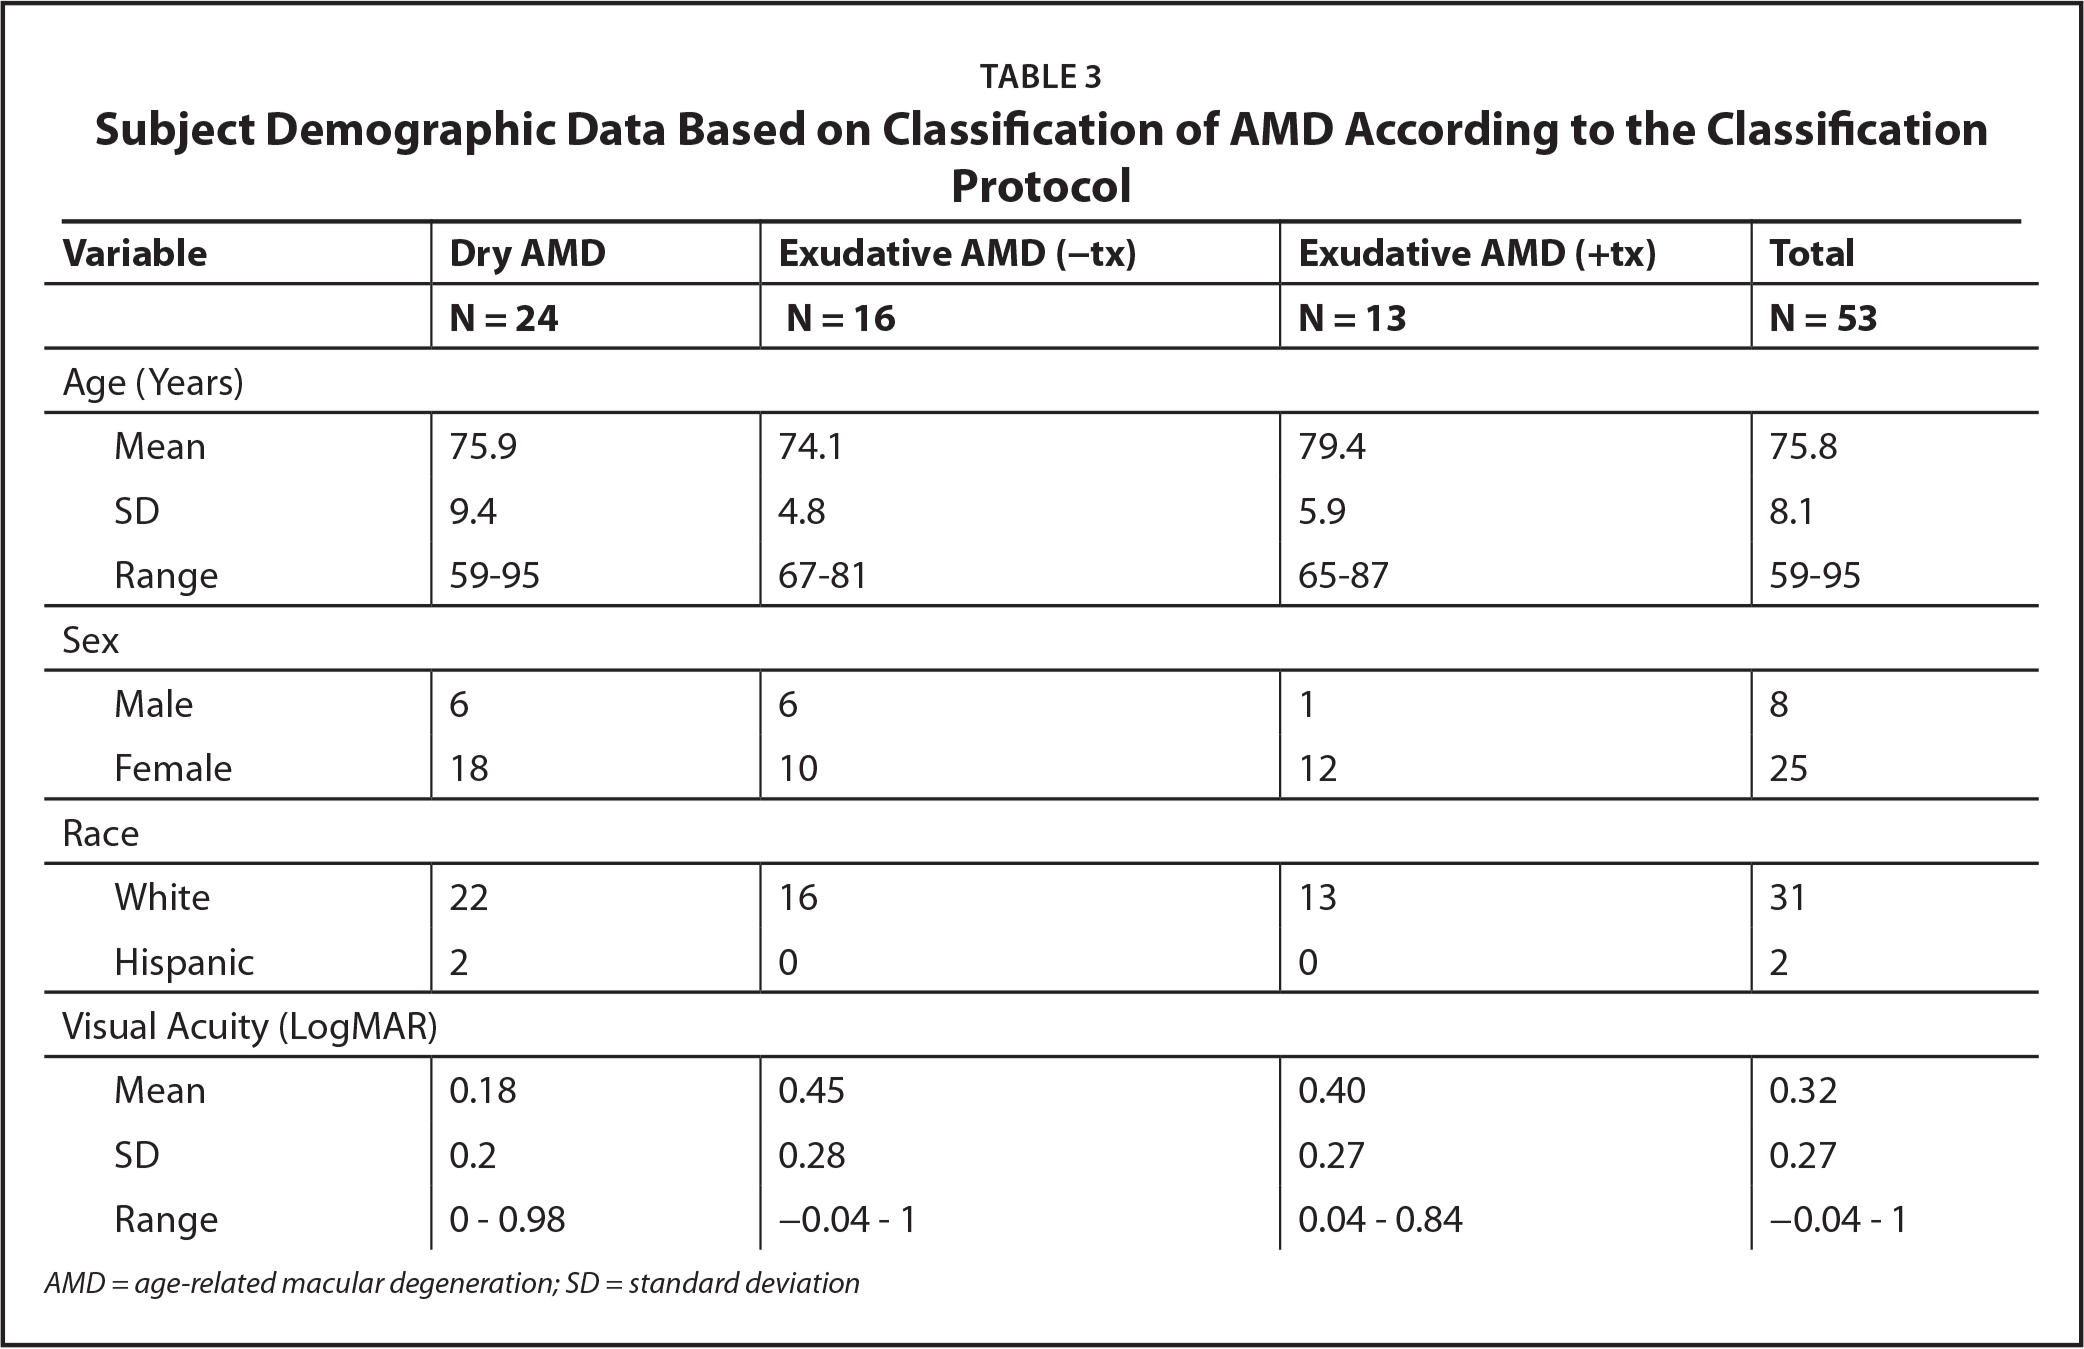 Subject Demographic Data Based on Classification of AMD According to the Classification Protocol